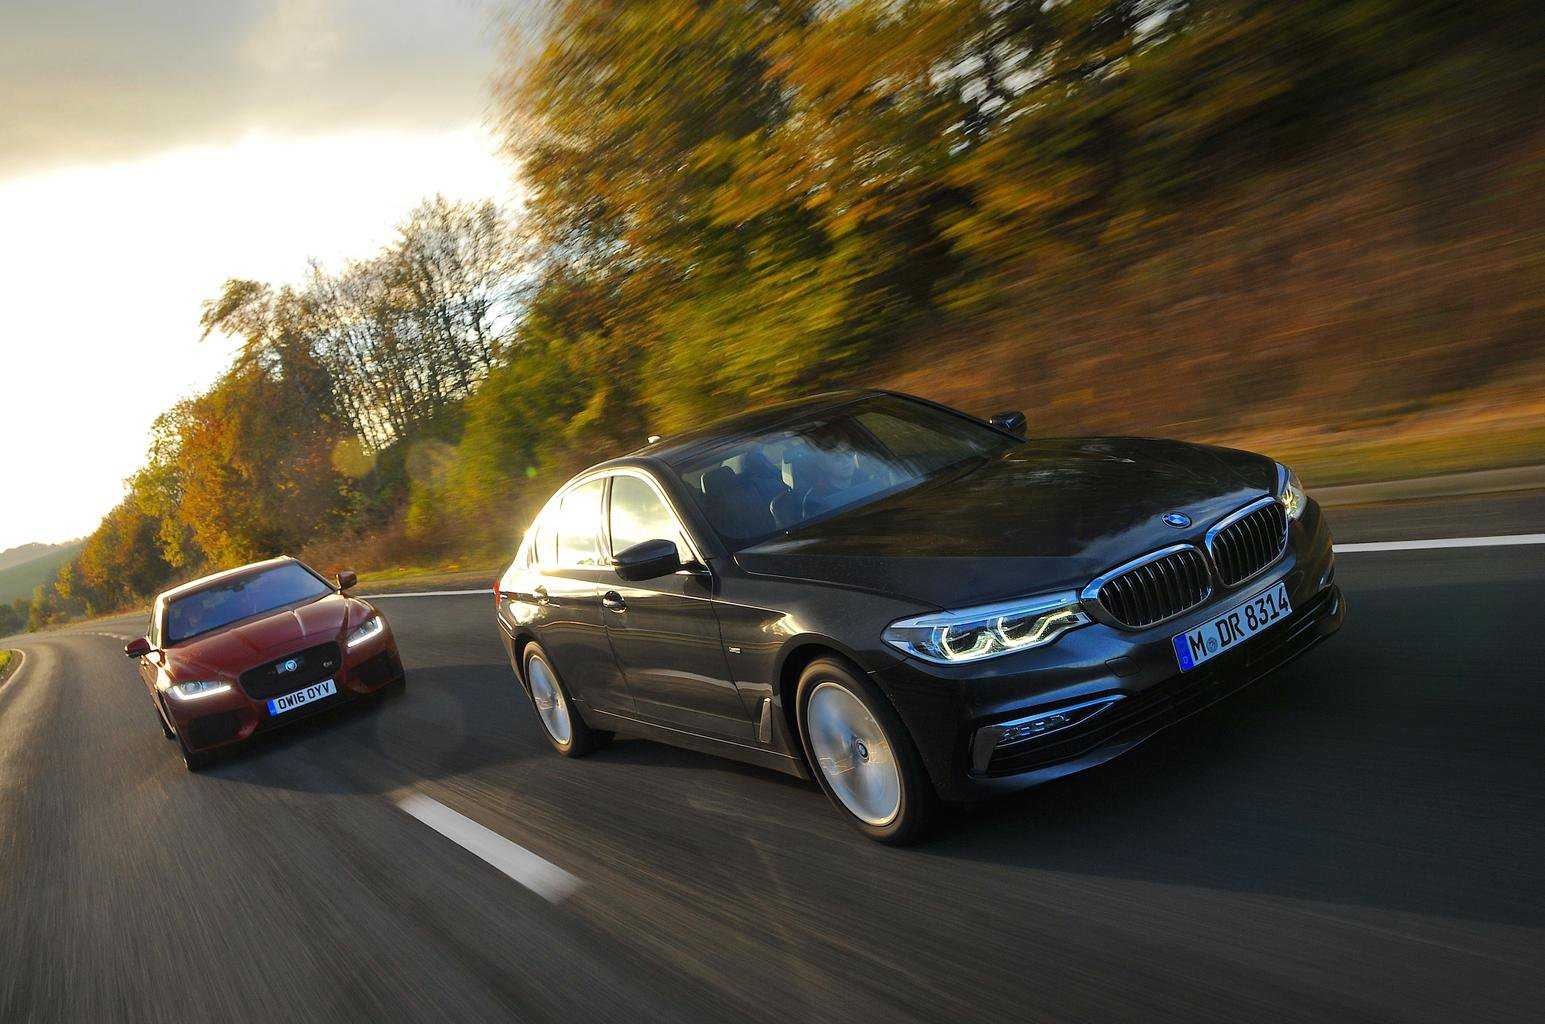 New BMW 5 Series vs Jaguar XF